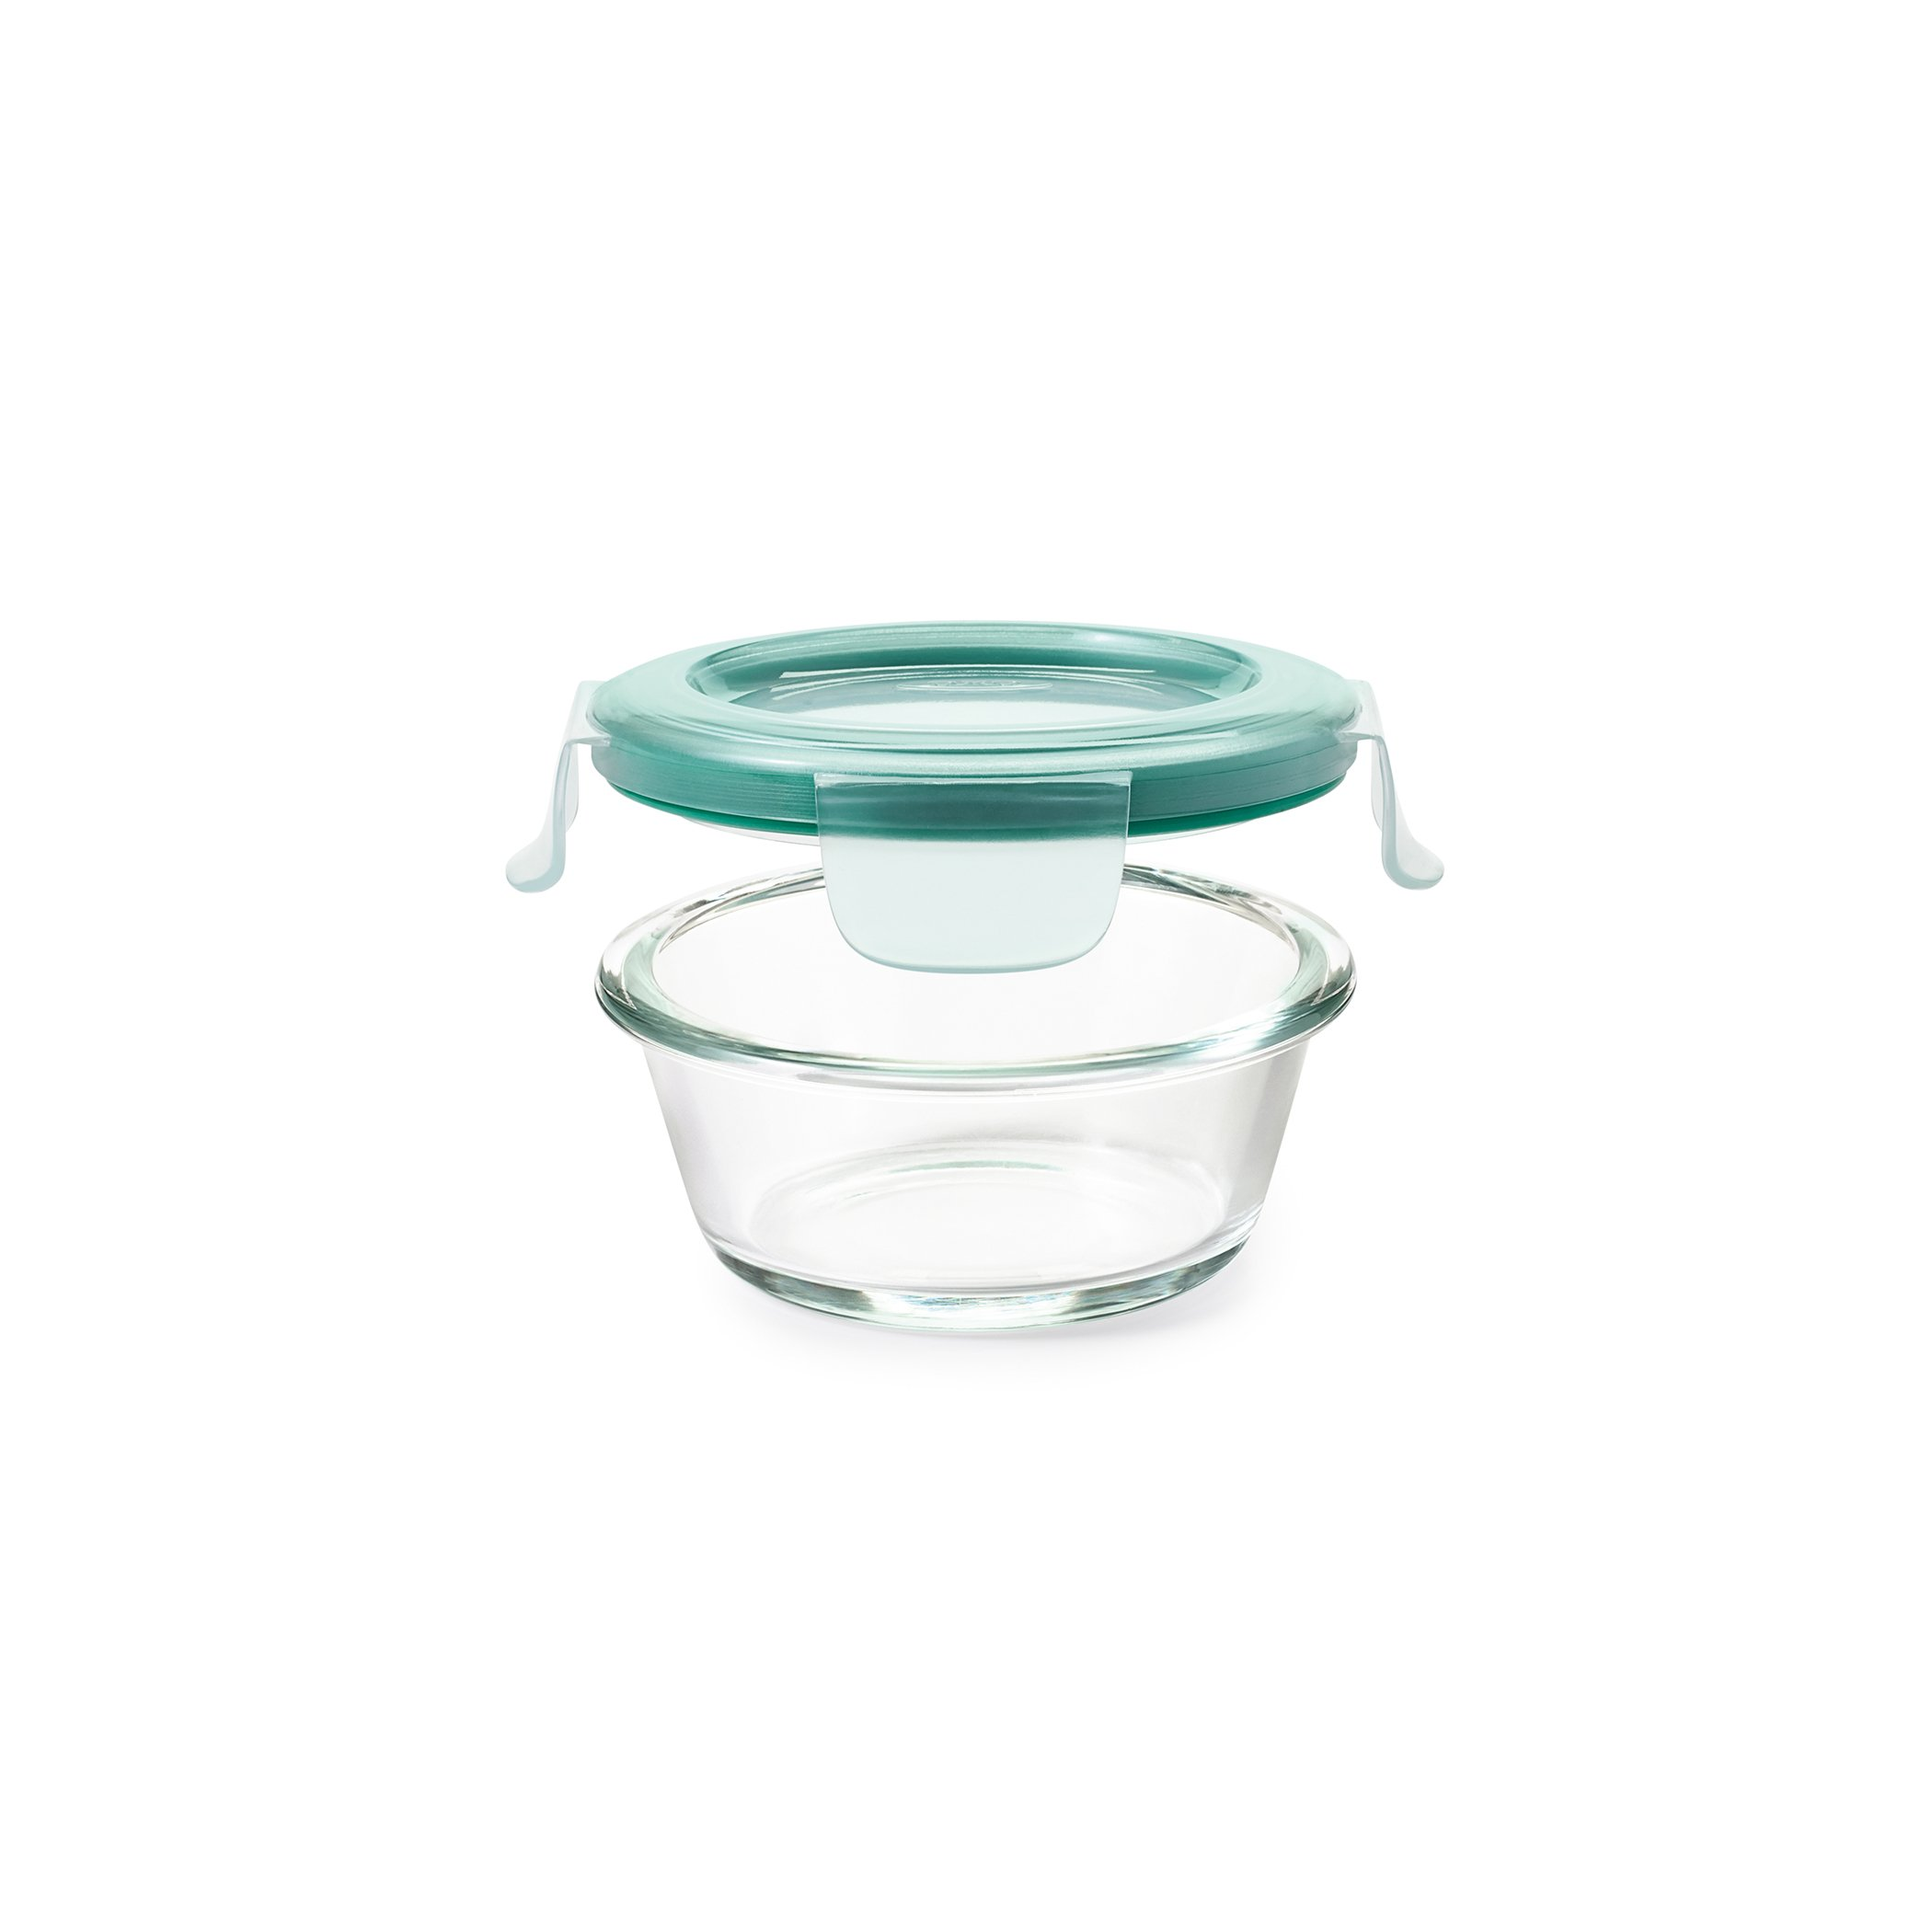 OXO Good Grips 8 Piece Freezer-to-Oven Safe Glass Bake, Serve and Store Set by OXO (Image #9)